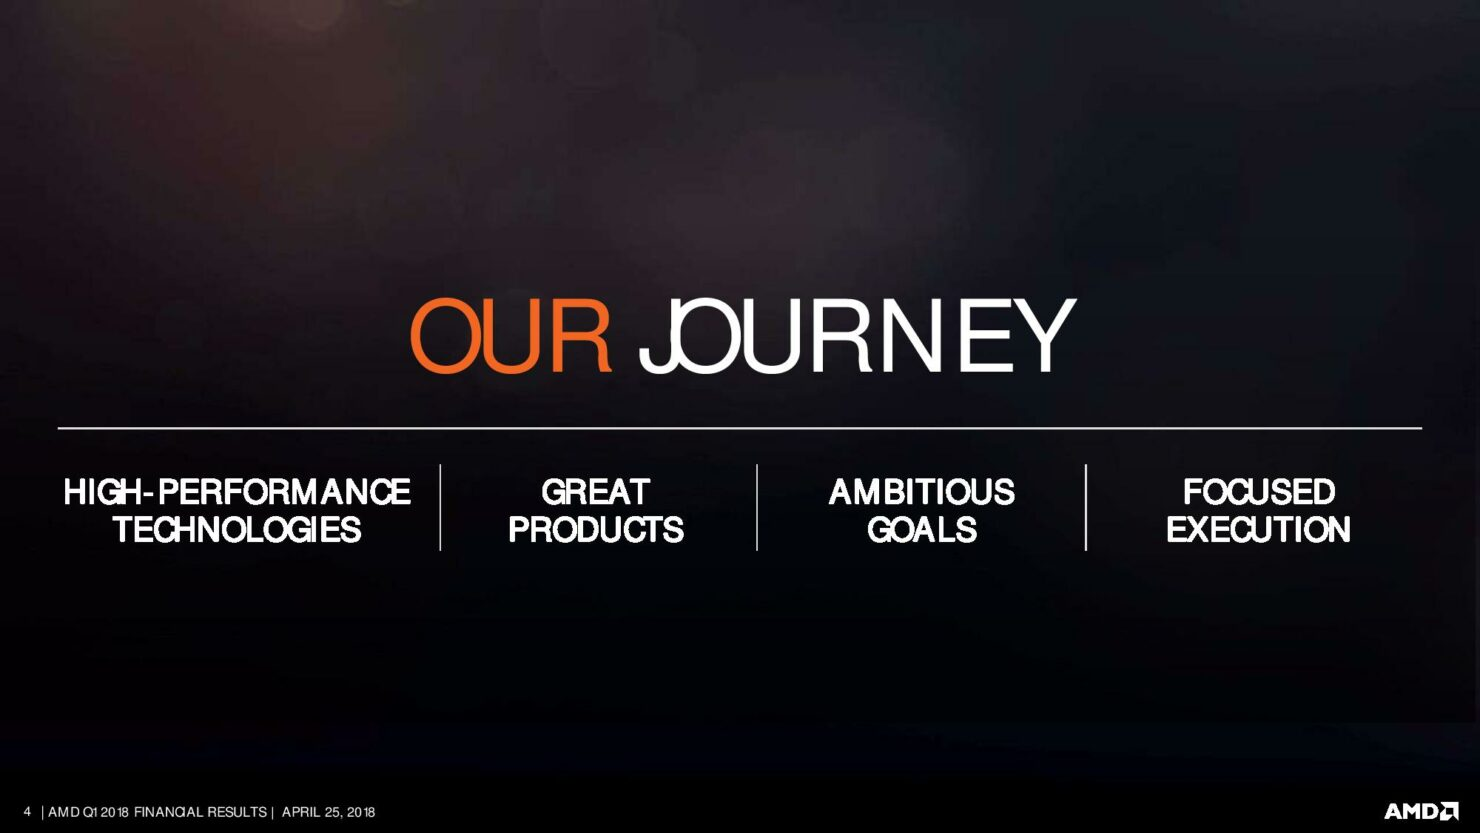 amd-q1-18-earnings-slides-page-004